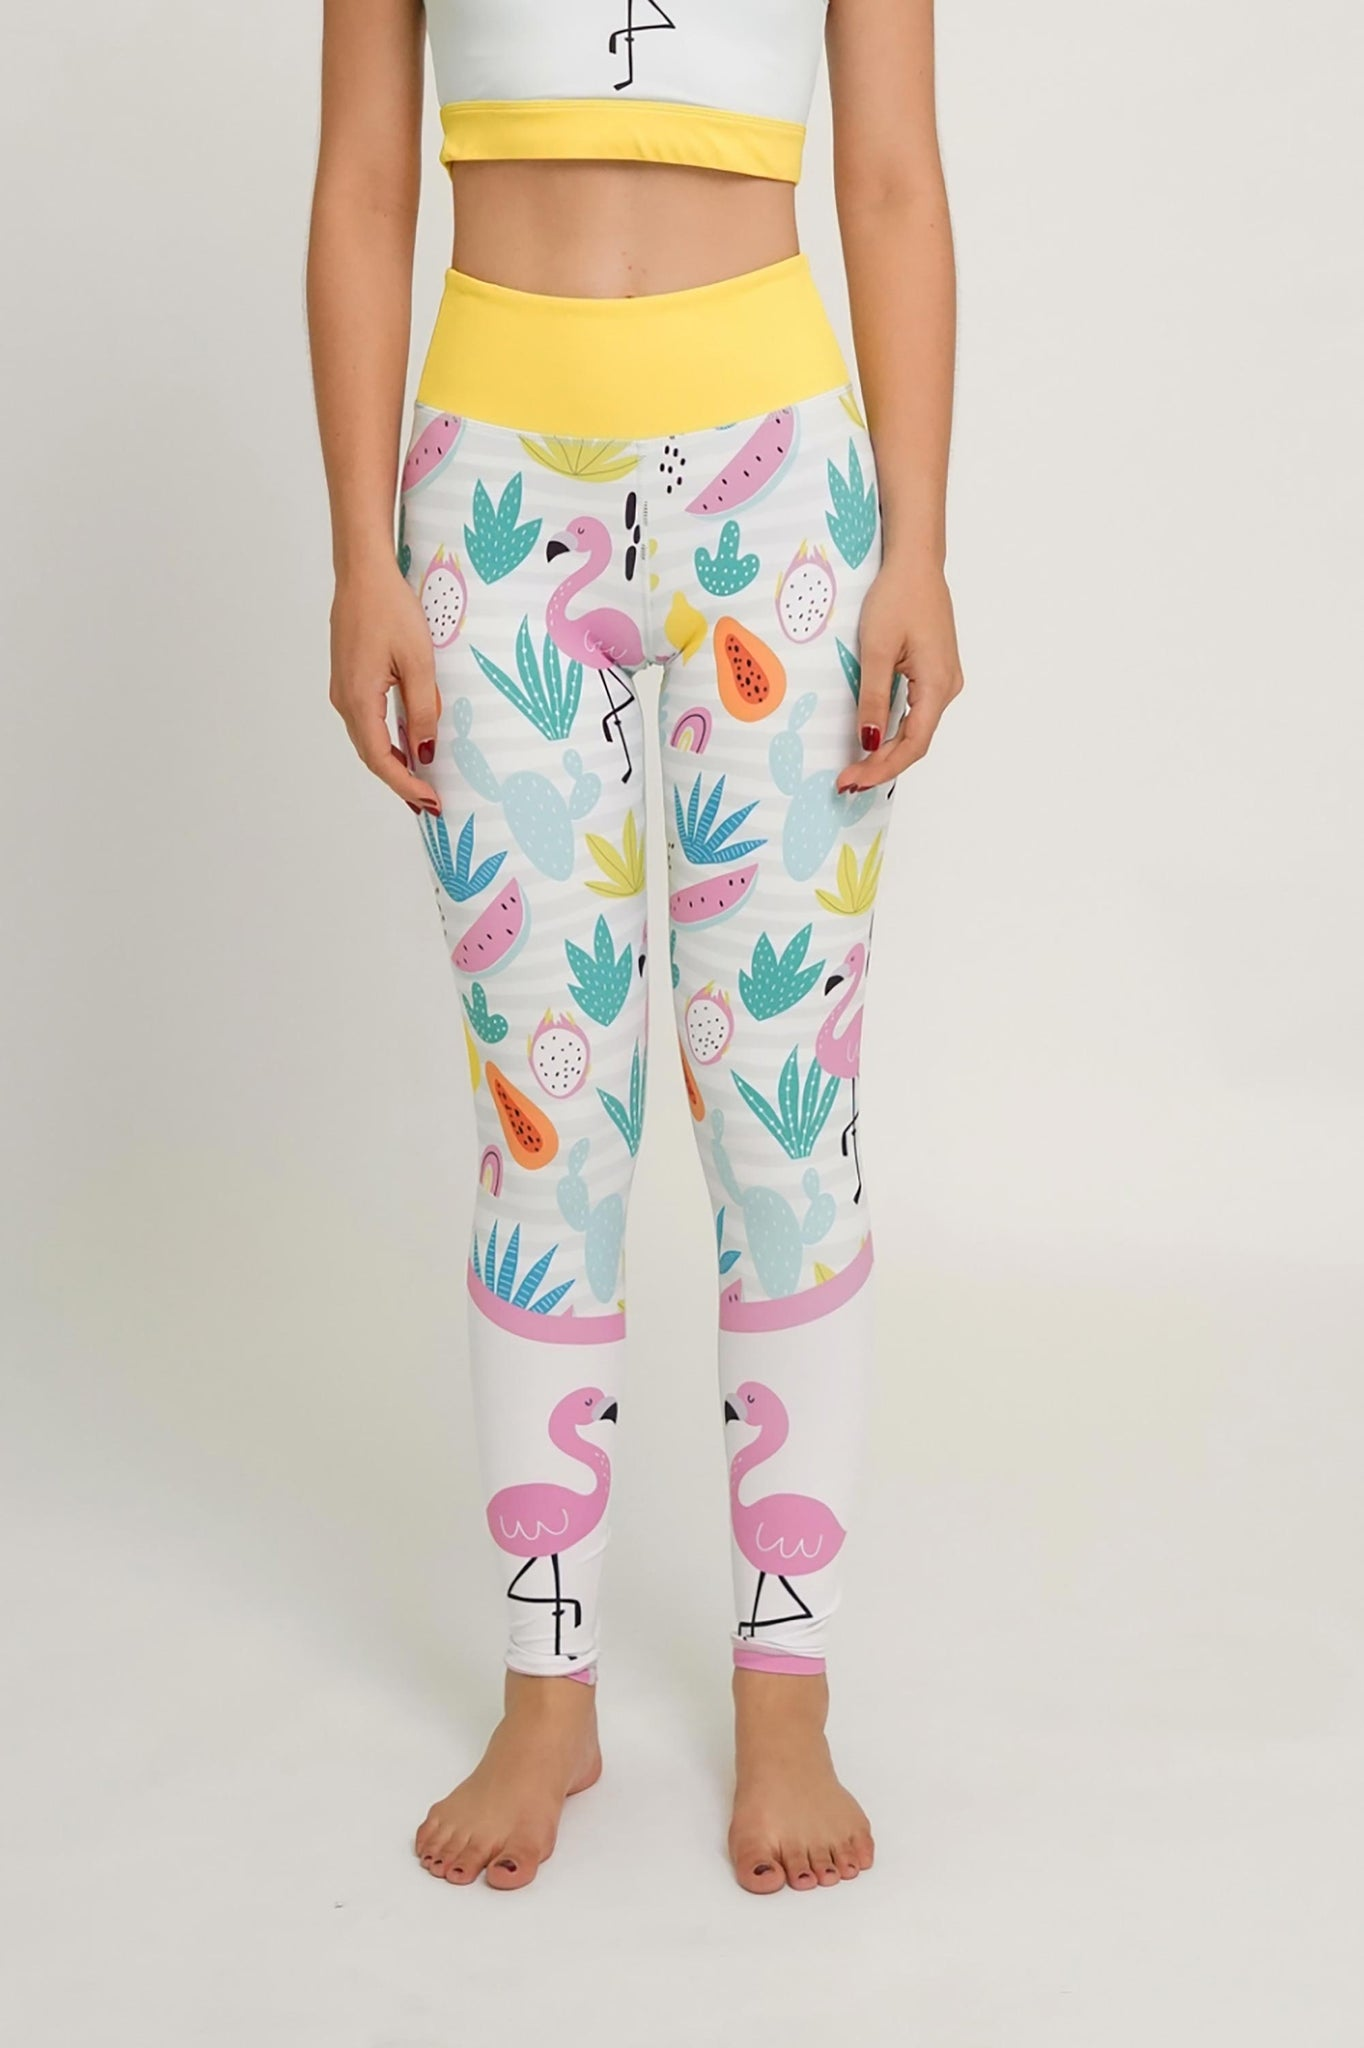 Fit Flamingo Flexi Pants